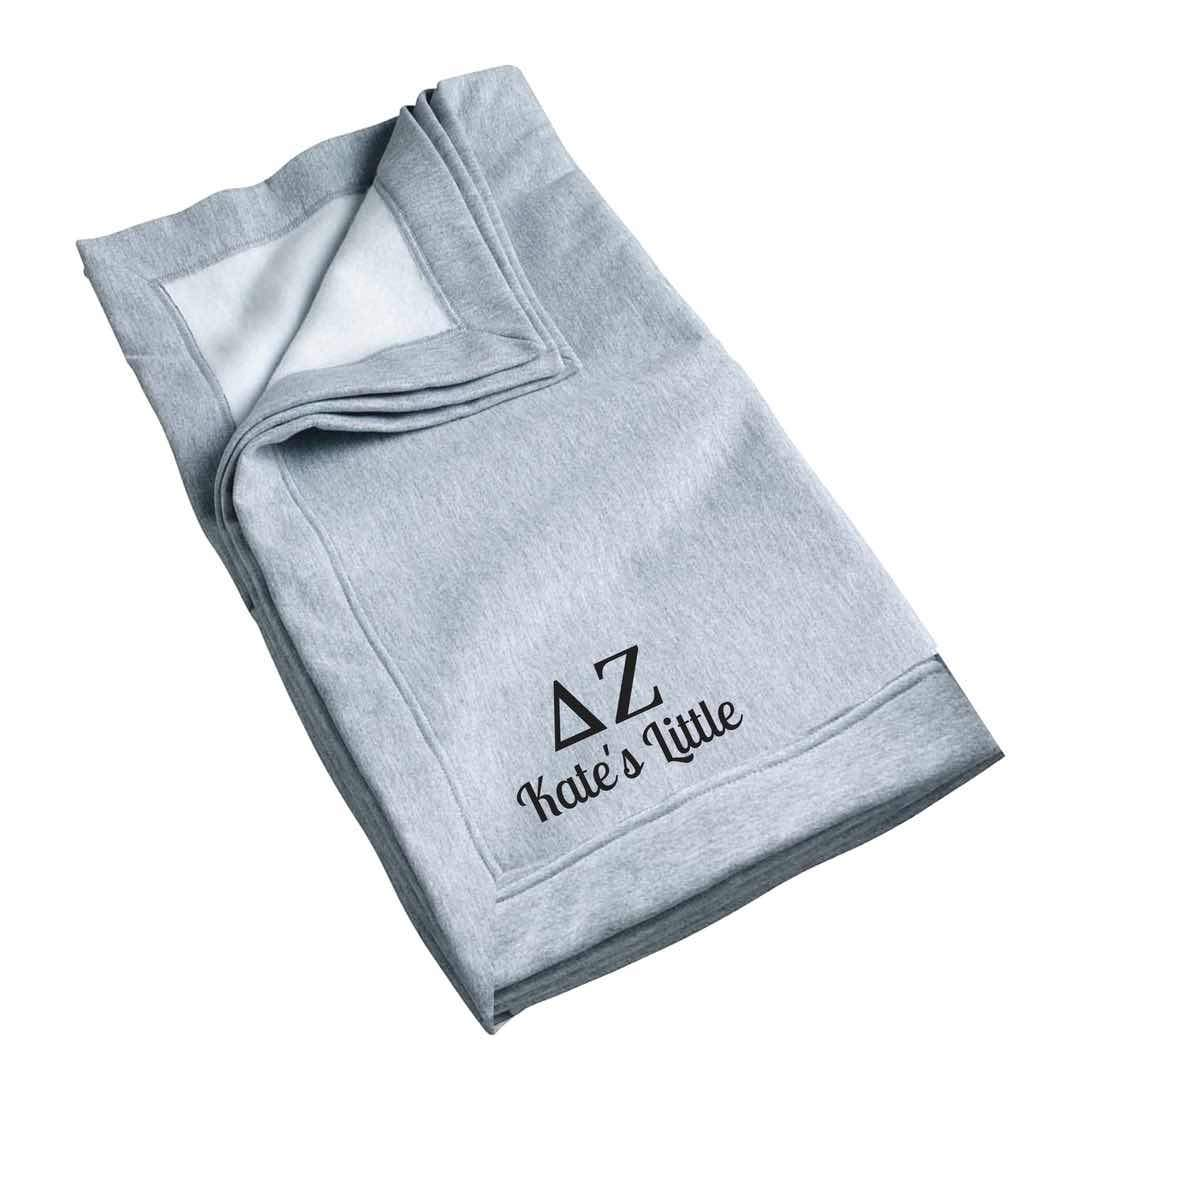 Delta Zeta Little Blanket, Recommended One Size Fits All Personalized Big Little Gift